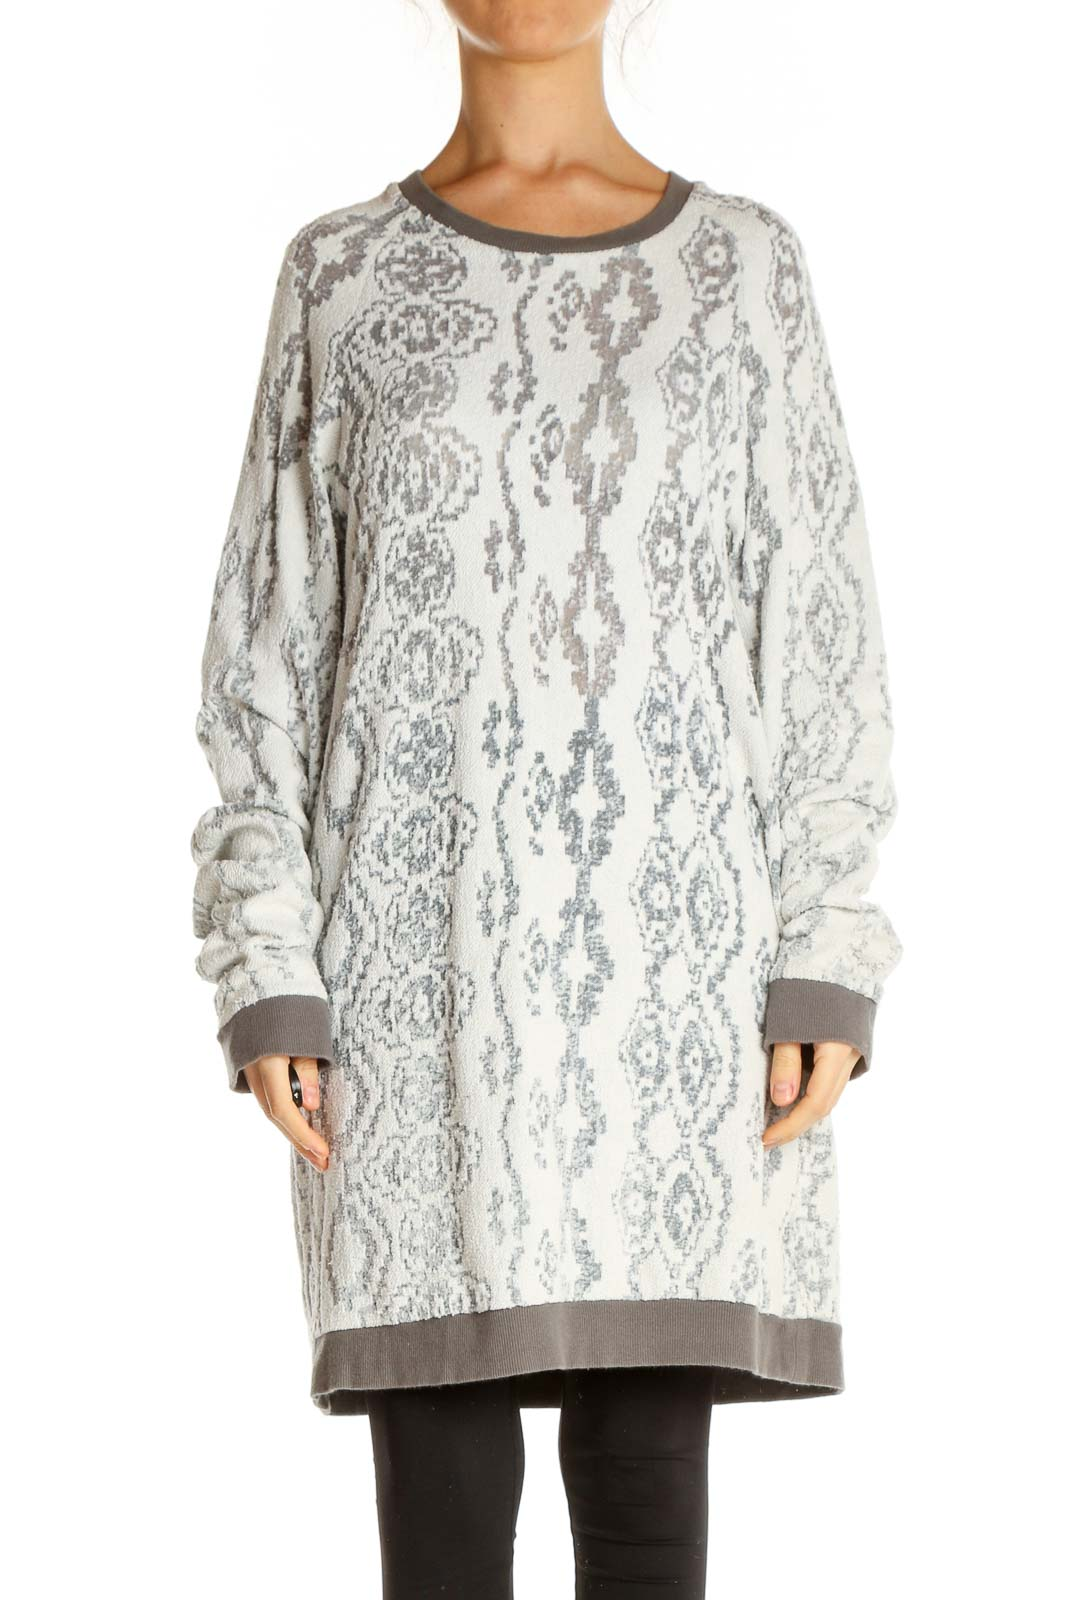 White Texture Casual Day Shift Dress Front